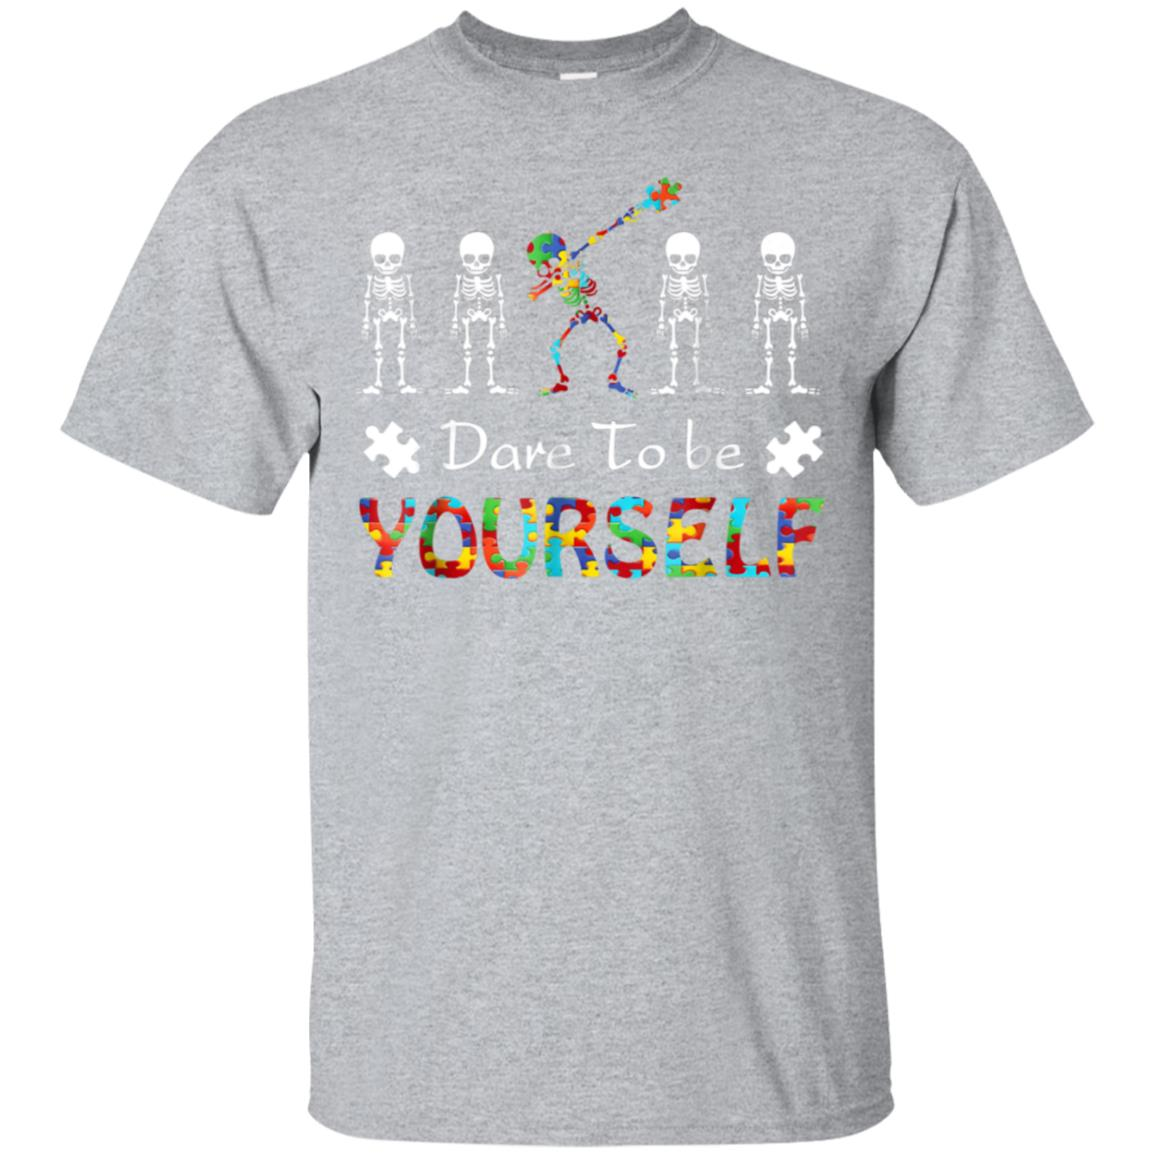 Autism Awareness Shirt For Boys Dare To Be Yourself Tee 99promocode